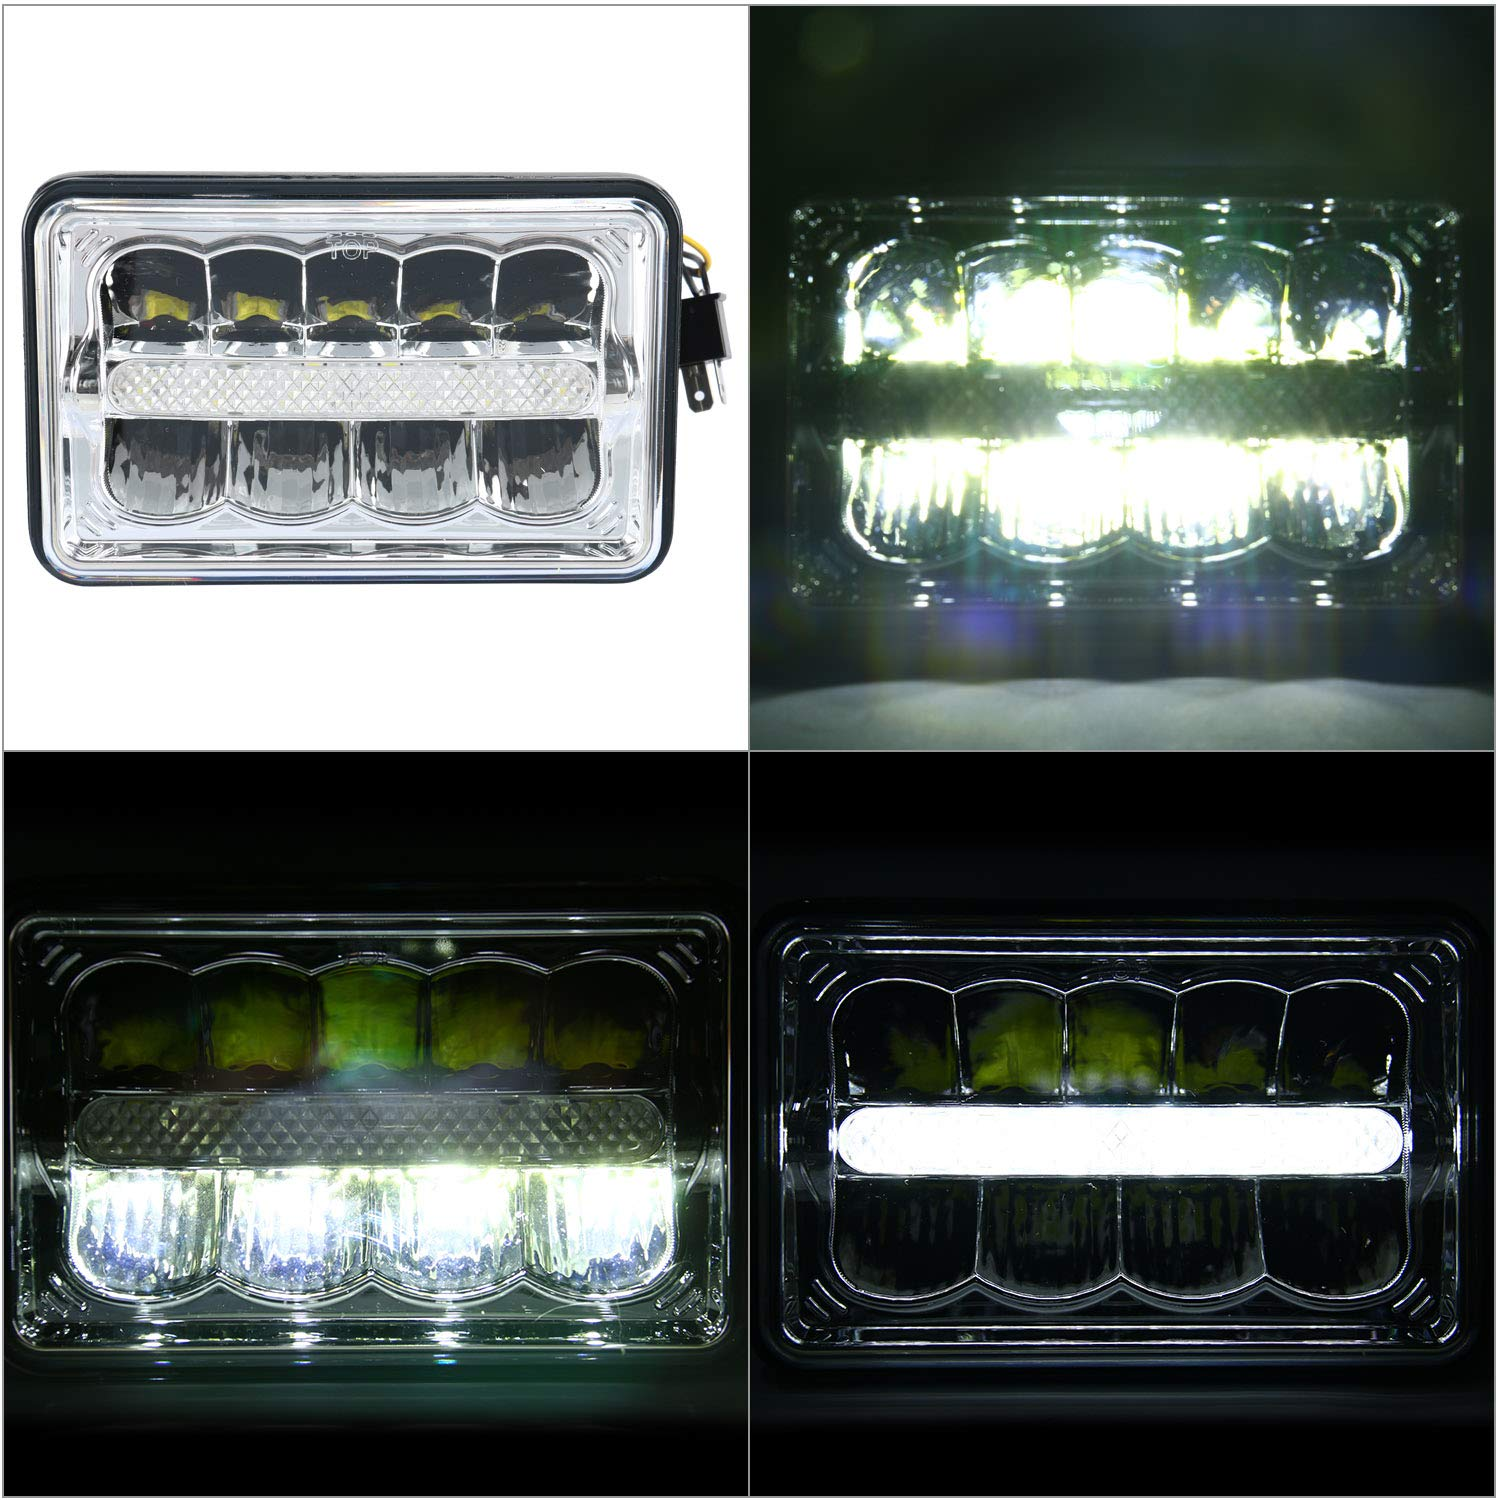 4Pcs Square 4X6 Inch LED Headlights Replacement High//Low Beam With Parking Light Replace Compatible with GMC Ford Trucks HID Xenon H4651 H4652 H4656 H4666 H6545 Yae First Trading Co Itd